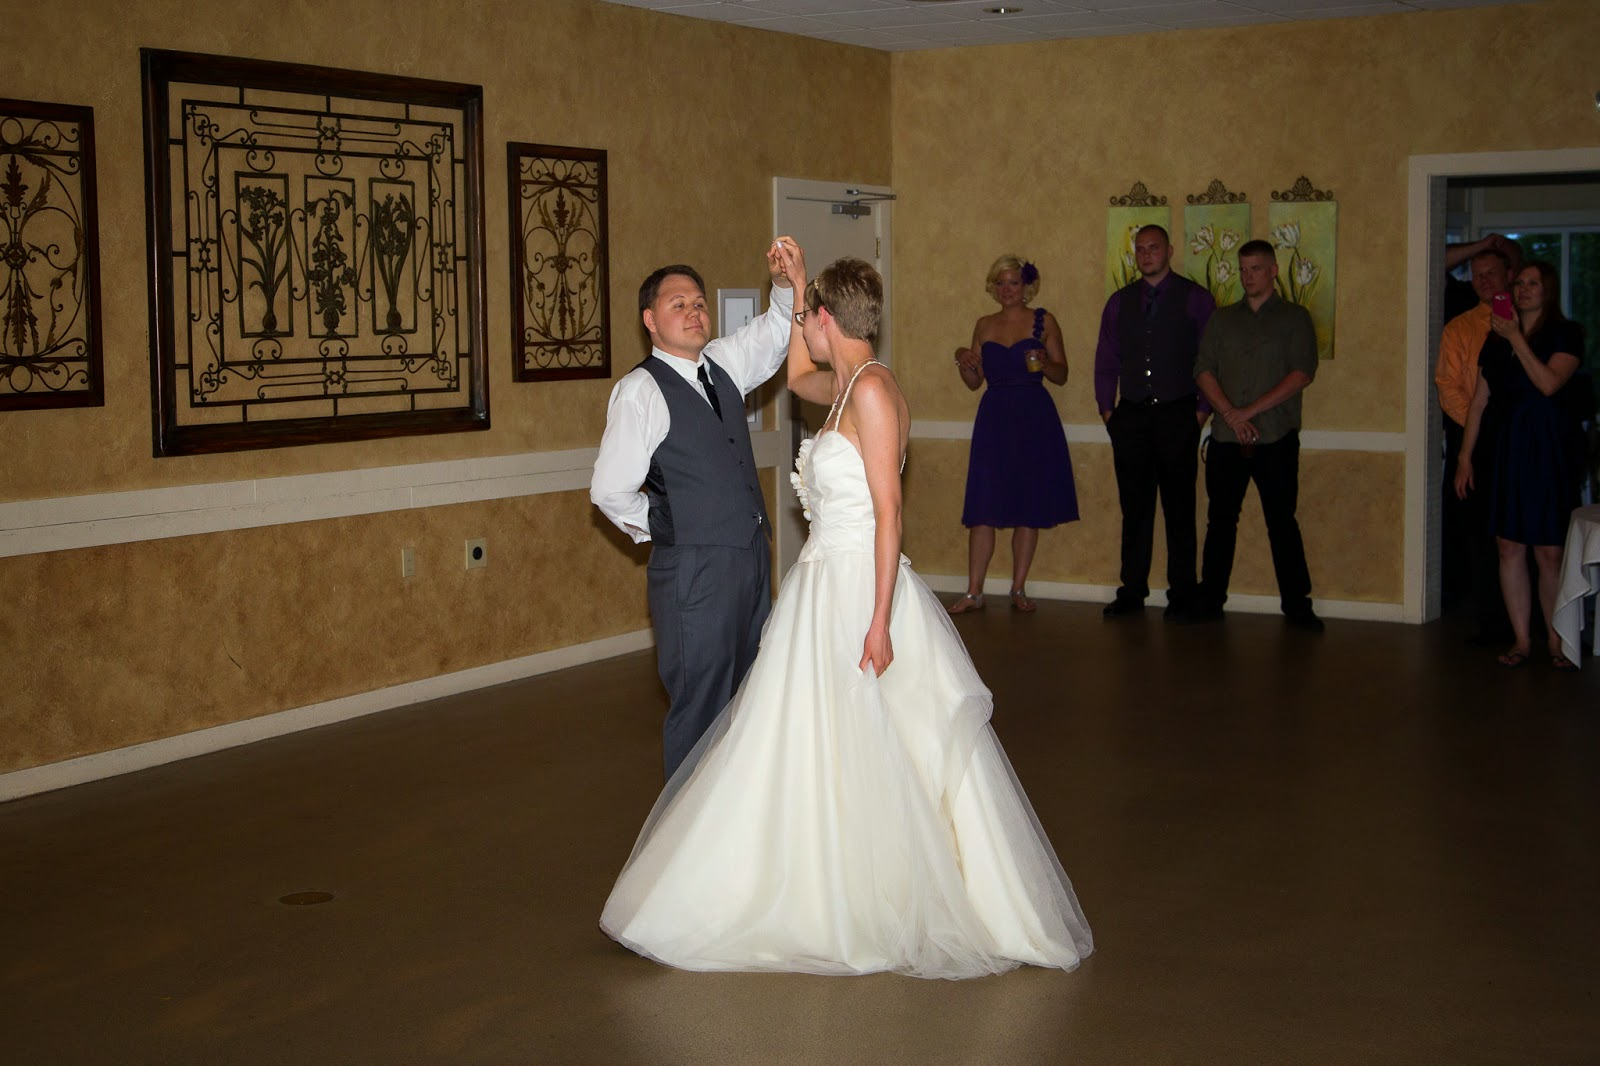 Photo of my wife and I performing our first dance together as husband and wife.